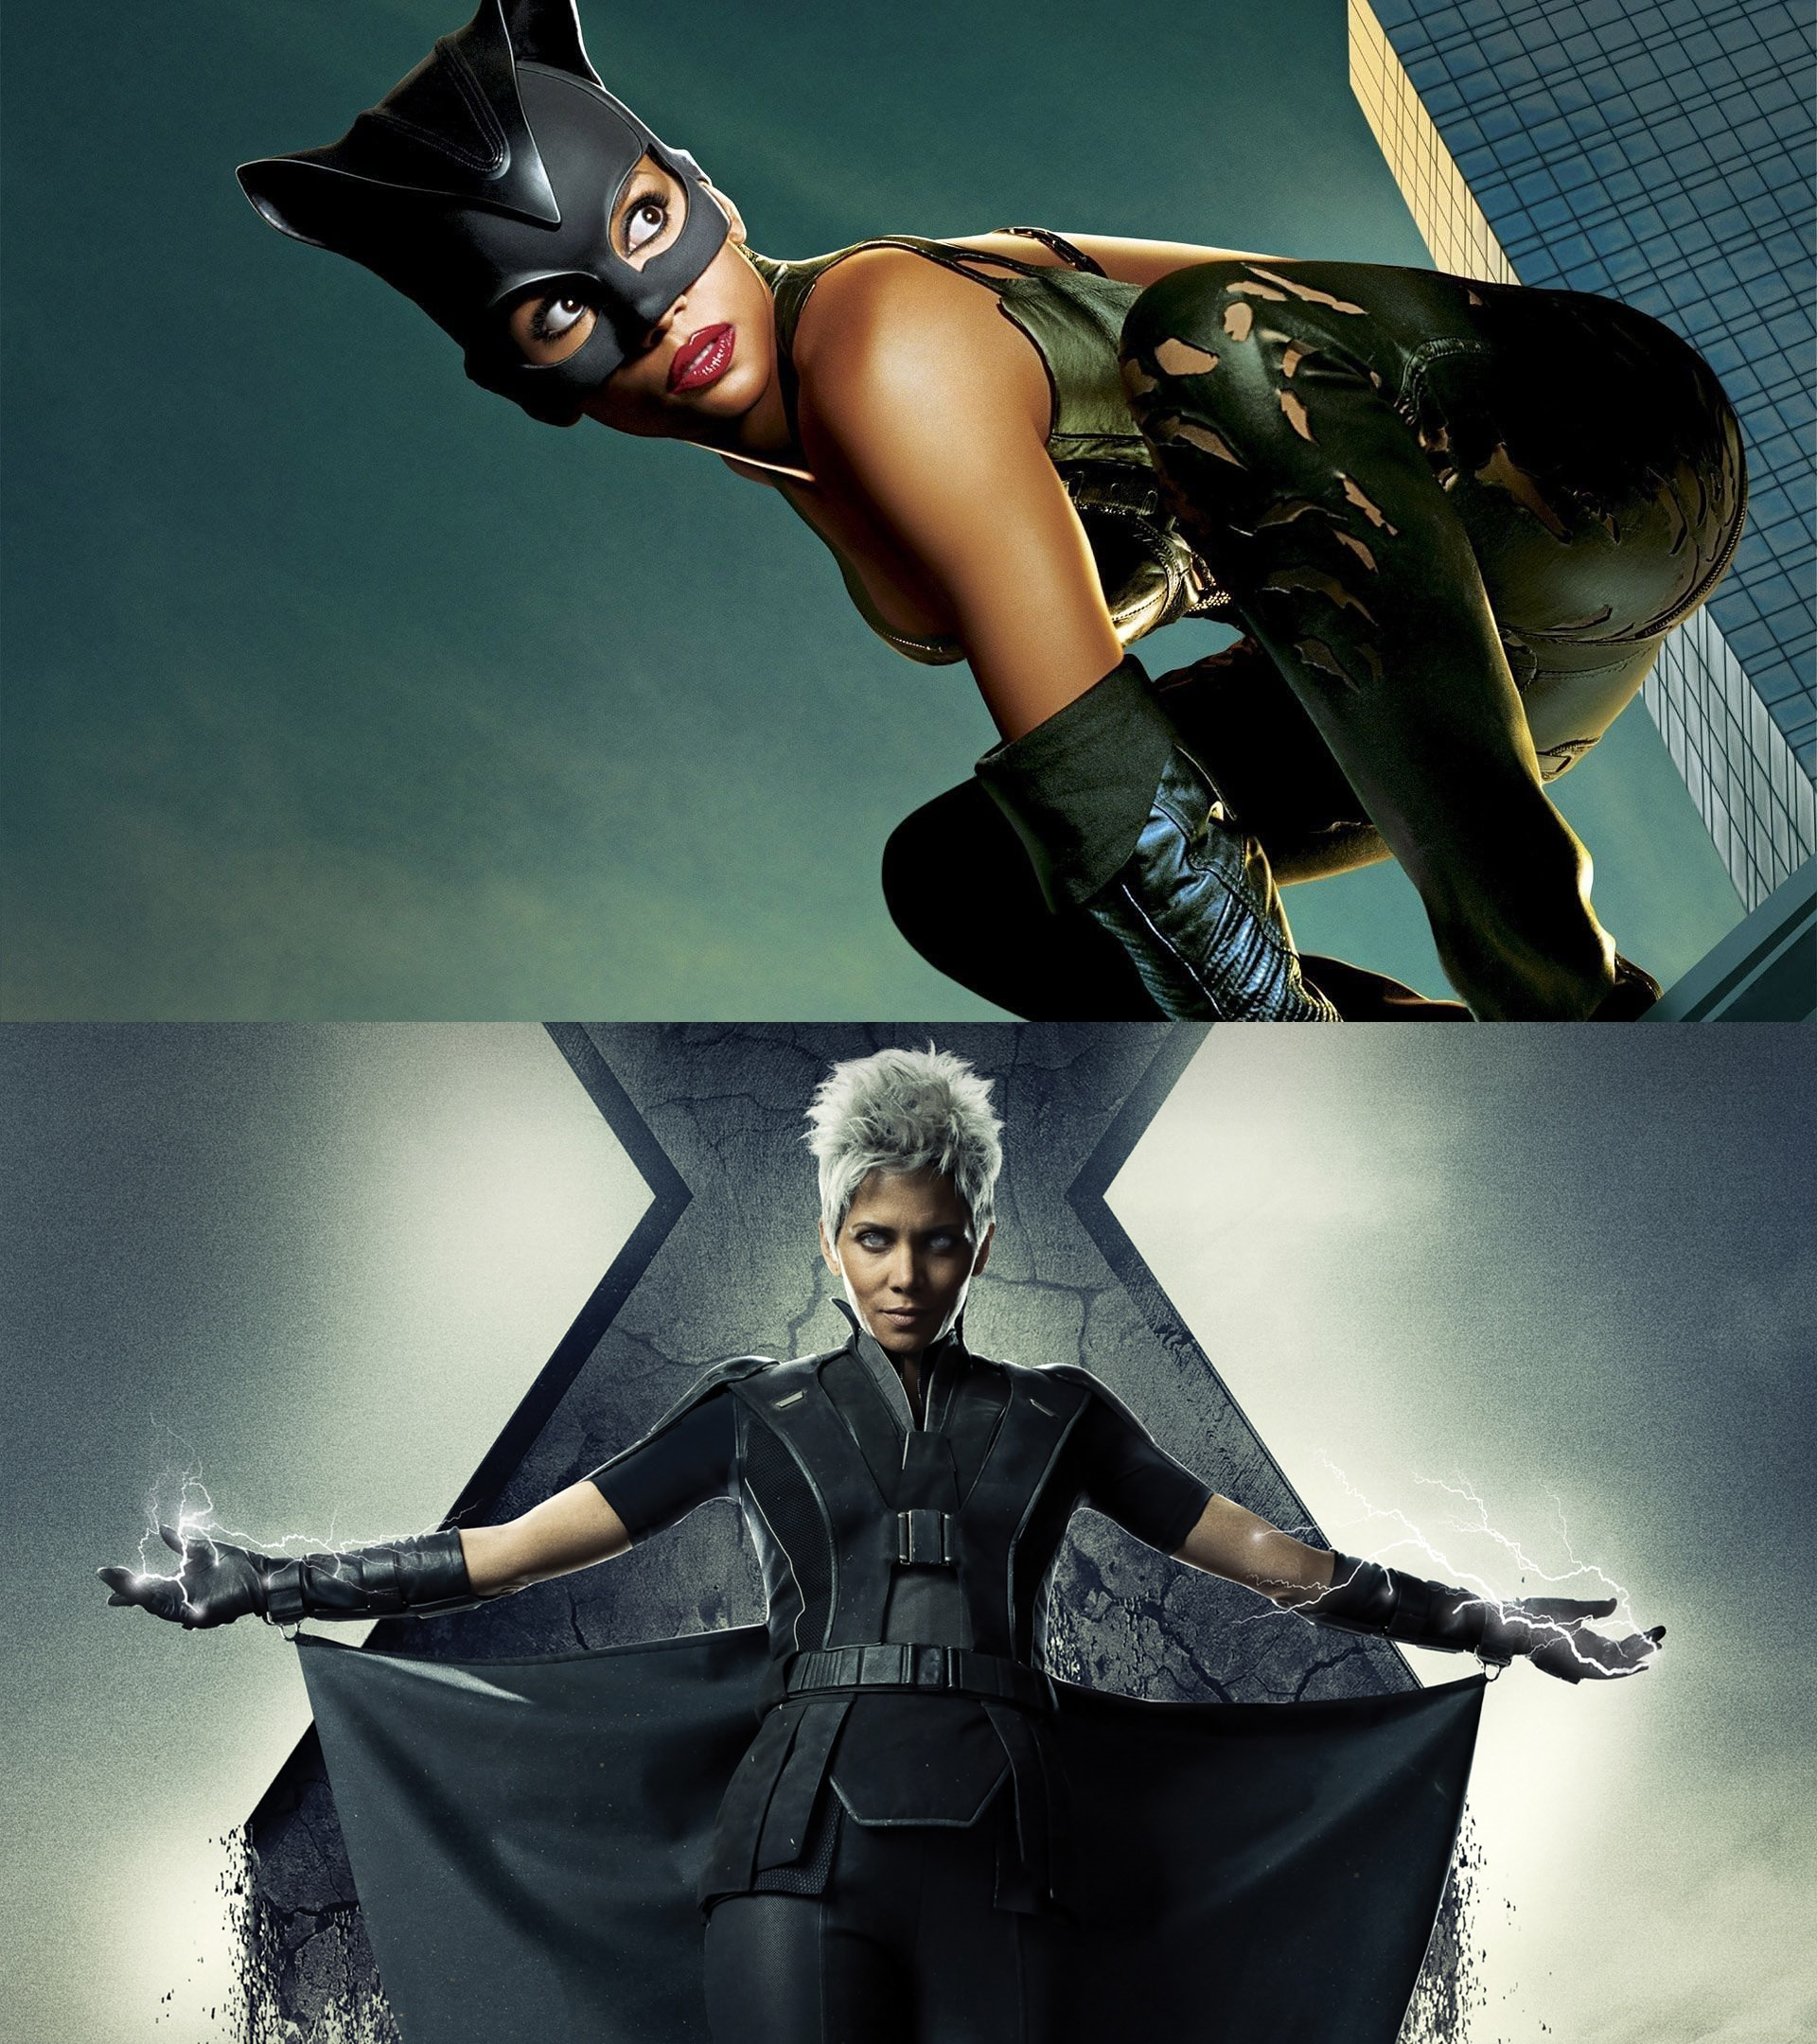 Halle Berry as Catwoman and Storm - Actors who have played more than one superhero